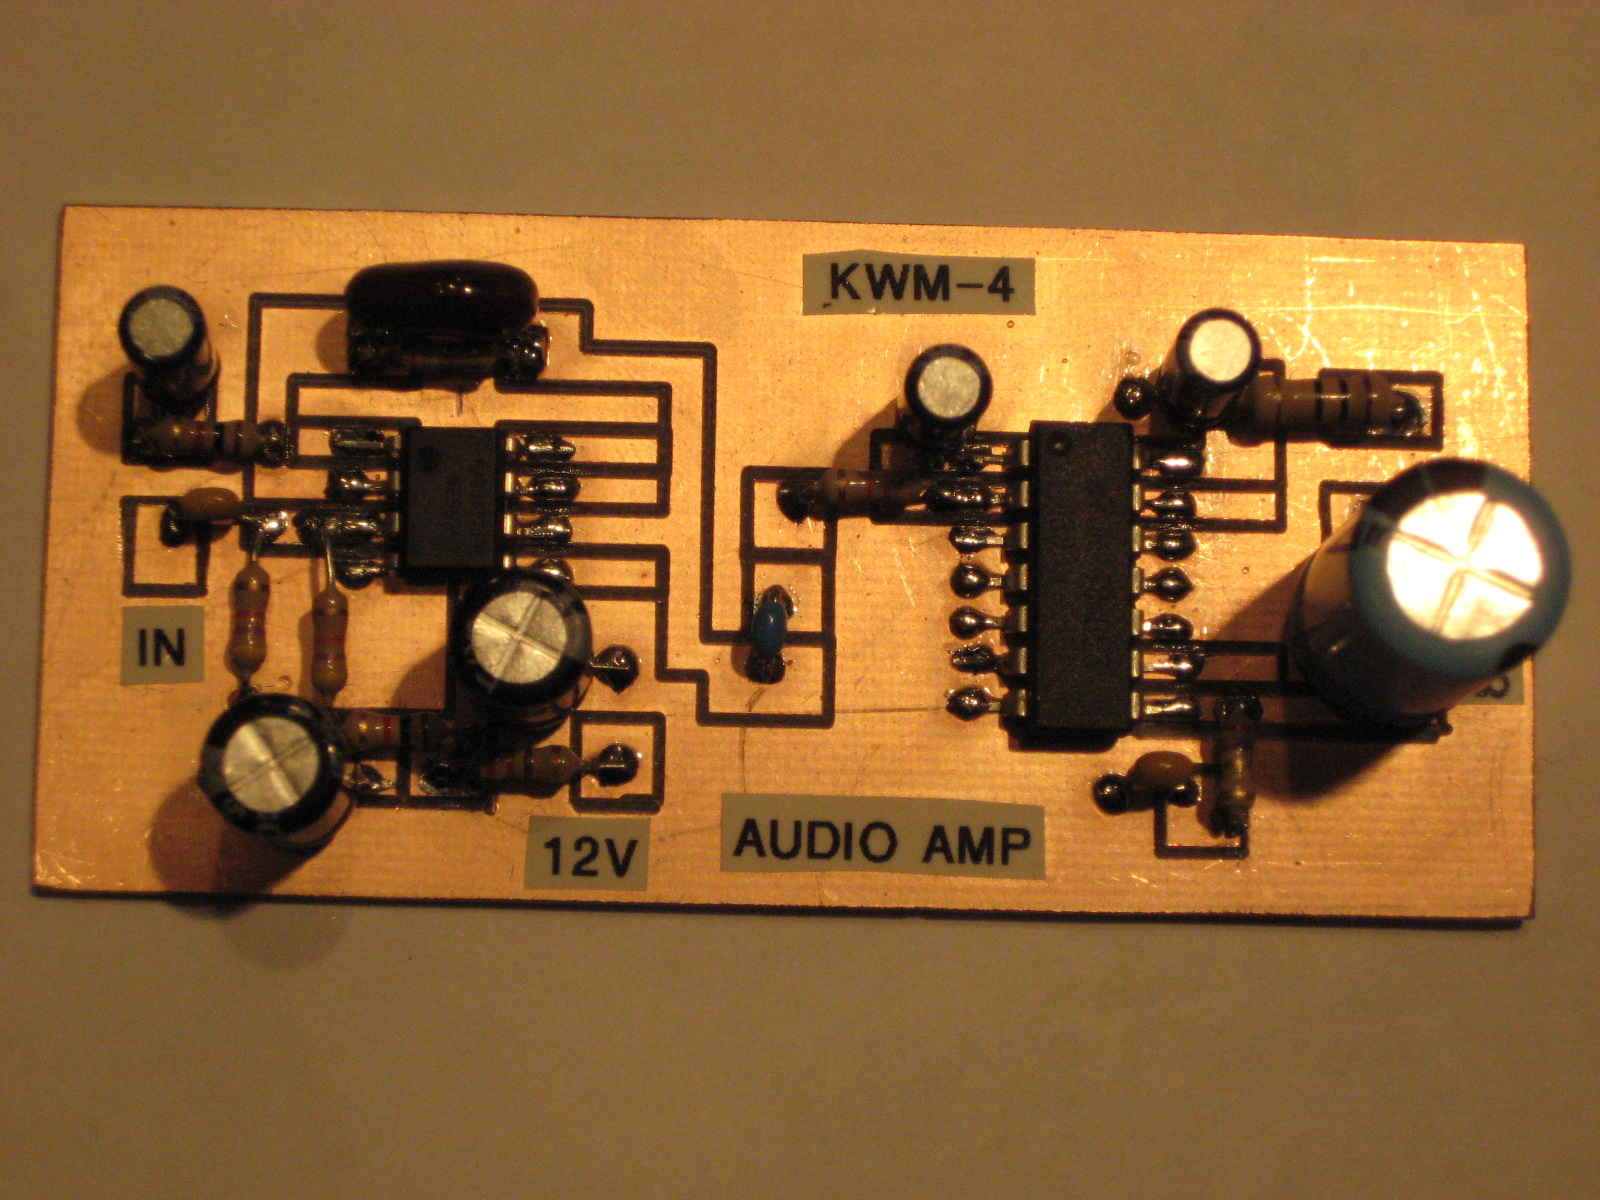 Simpleceiver Plus Amplifier Described Here Uses Two Small Amplifiers Like Lm380 Mounted I Got Overcome By Other Commitments On 8 22 And Today Does Not Look Any Better But Still Plan To Build A Version Of The 1st Amp Chunk